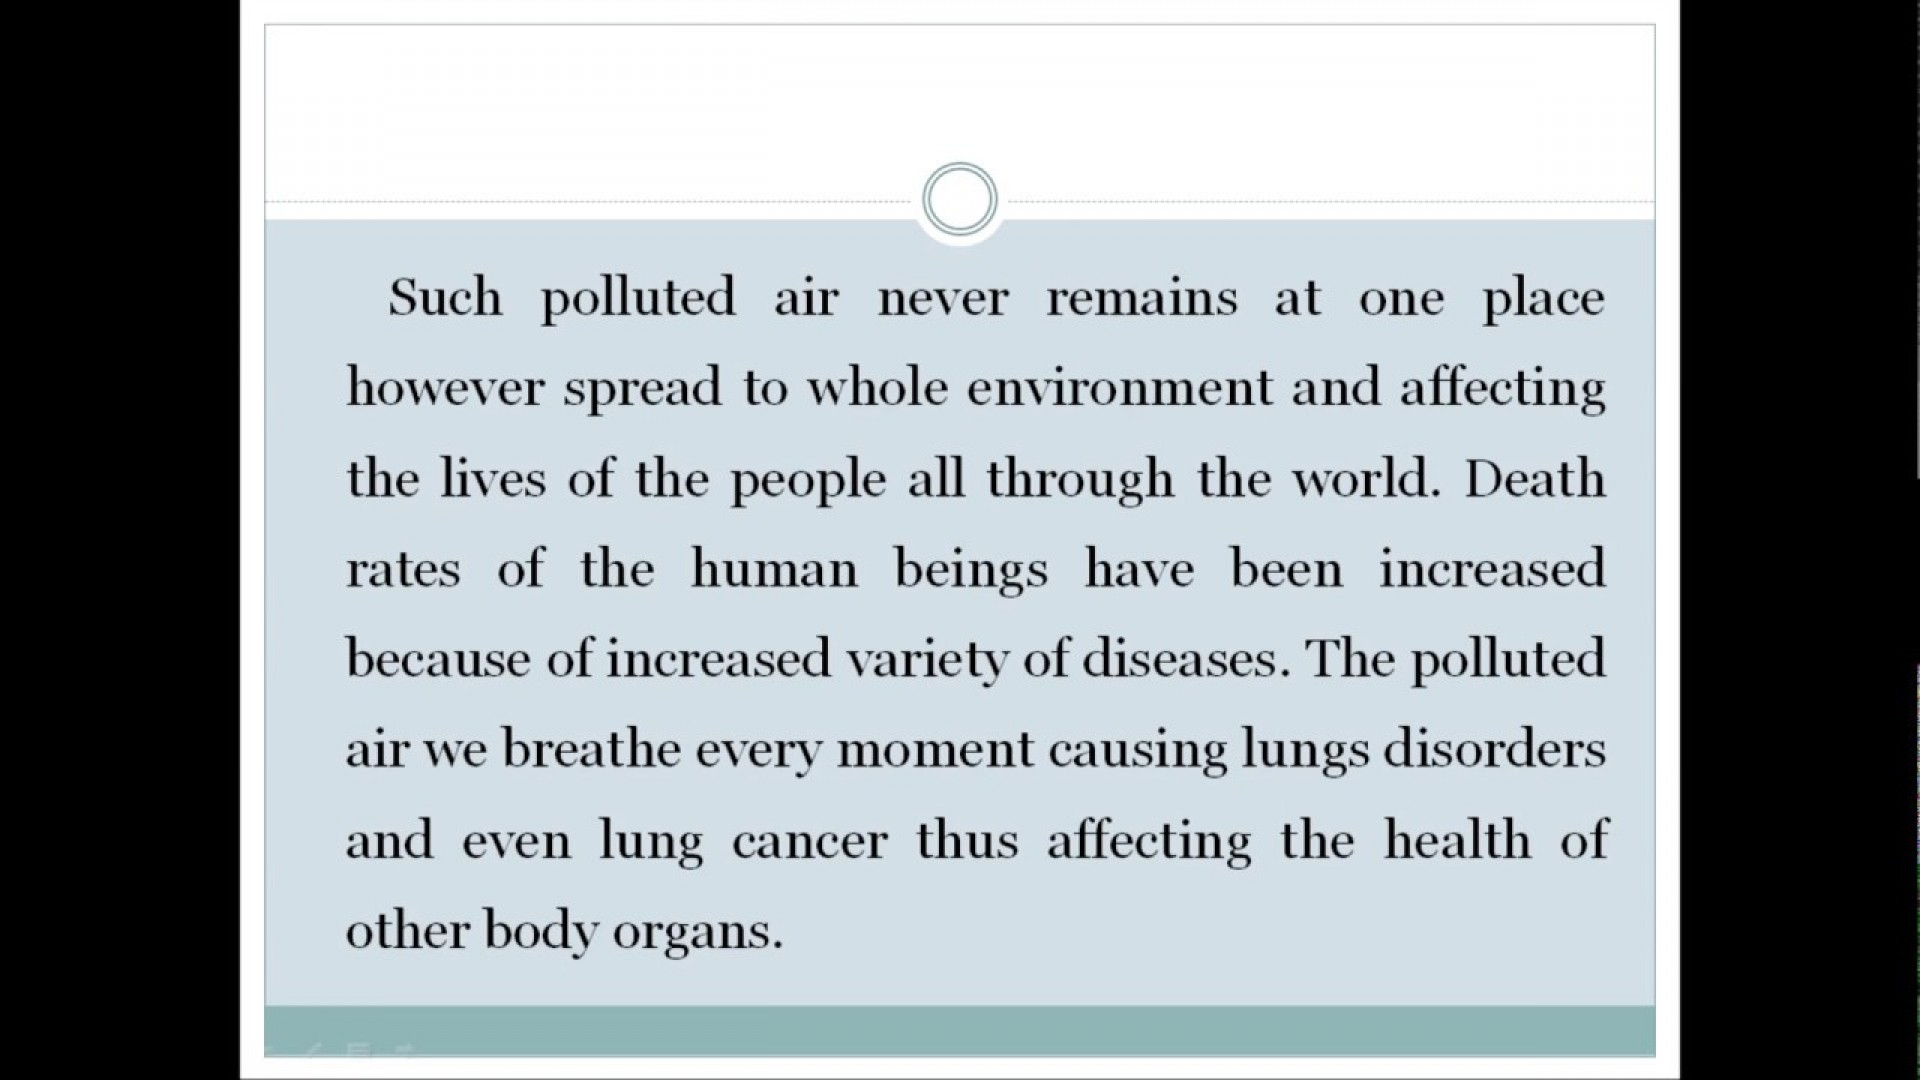 012 Essay Example Cause And Effect On Pollution Astounding Of About Air Land 1920